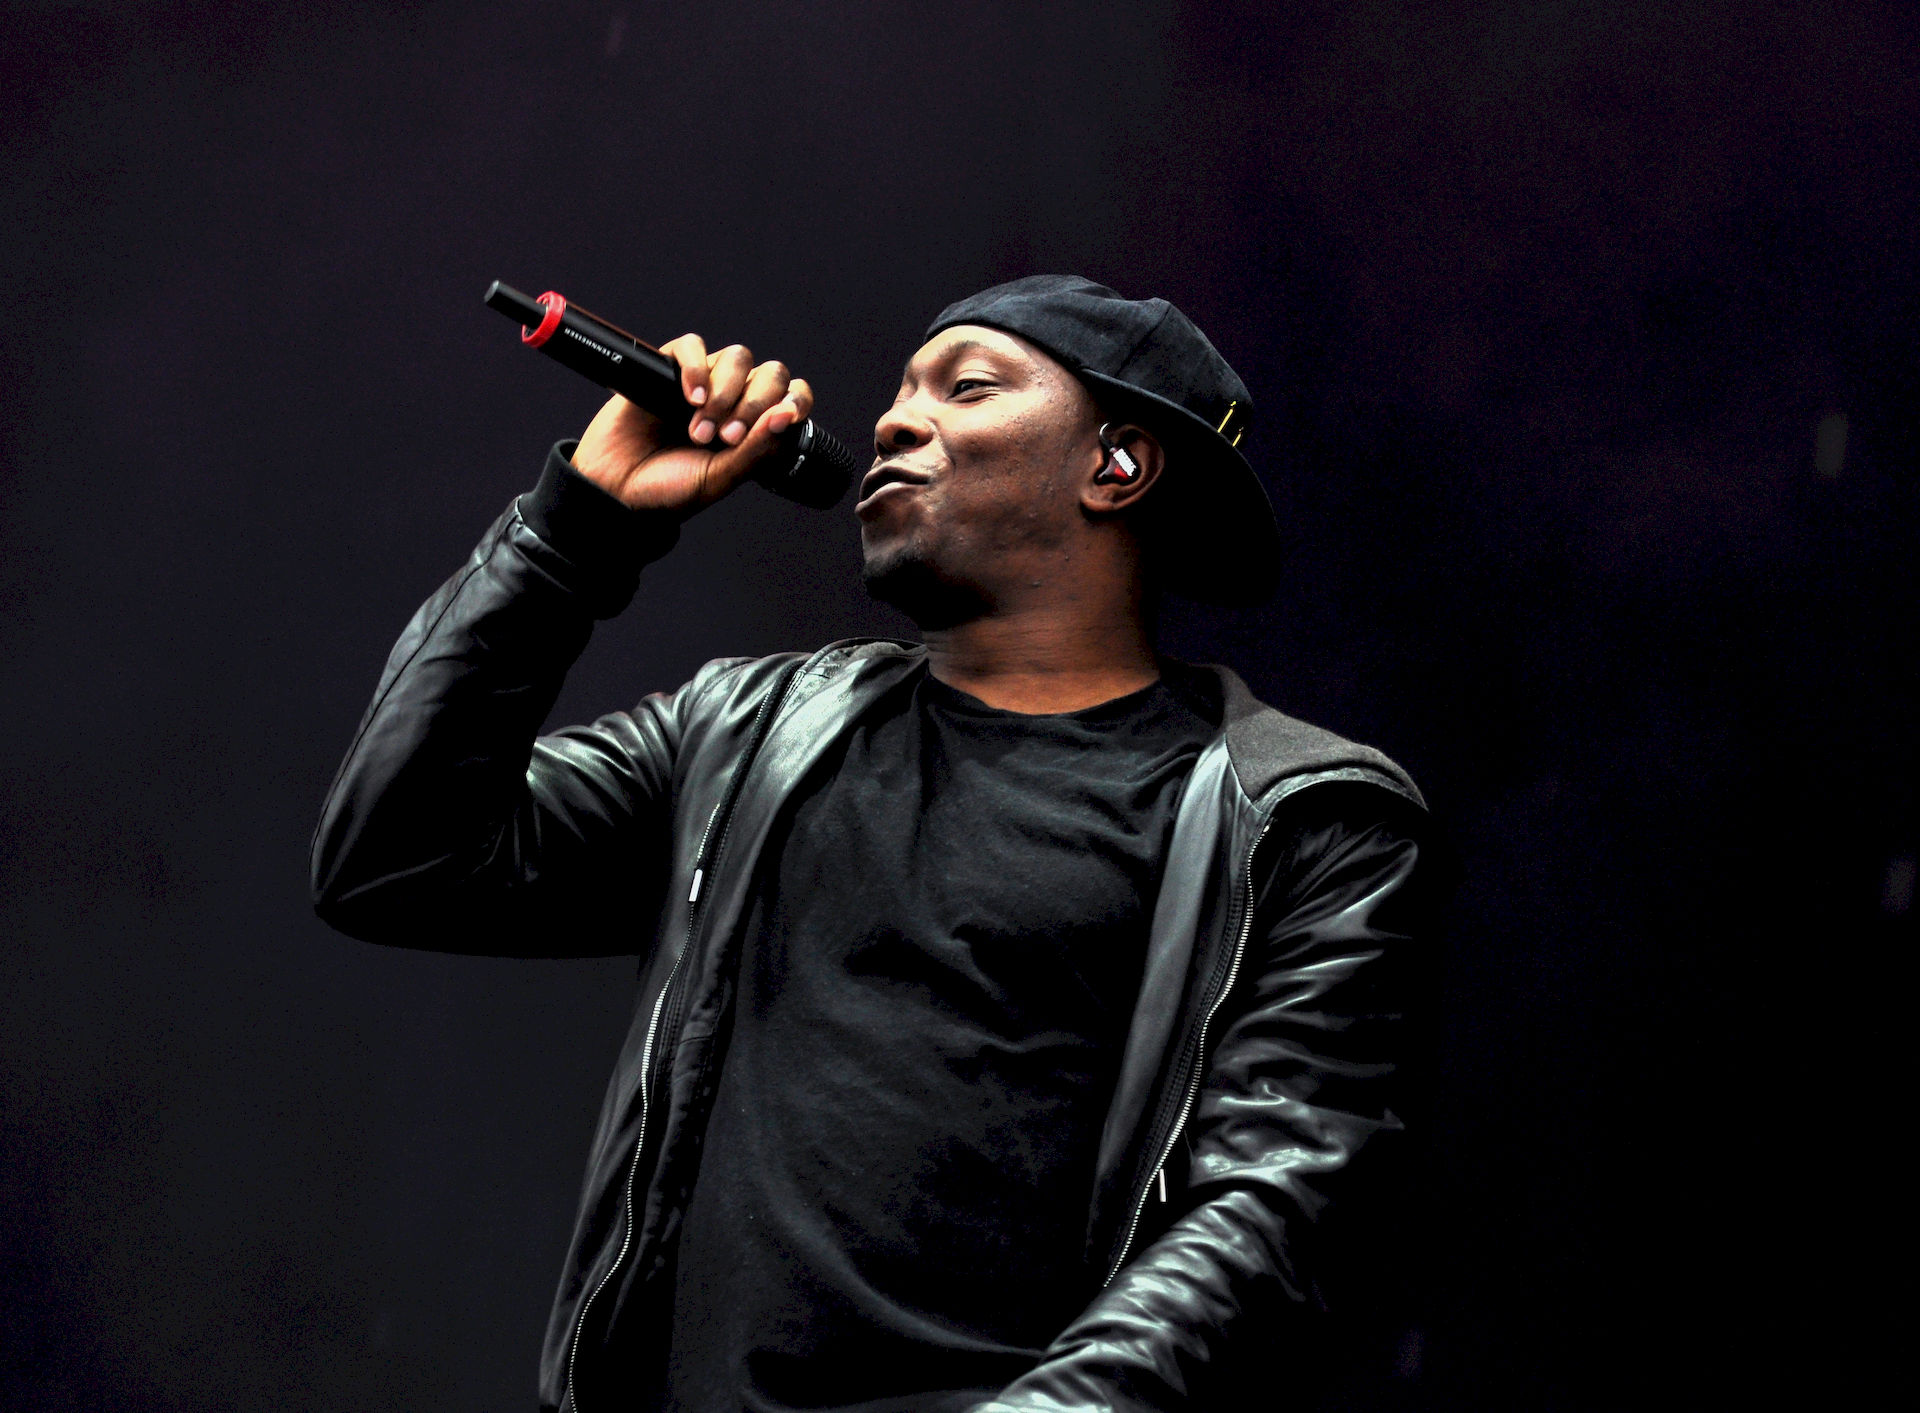 Photo of Dizzee Rascal: English grime MC, songwriter and record producer